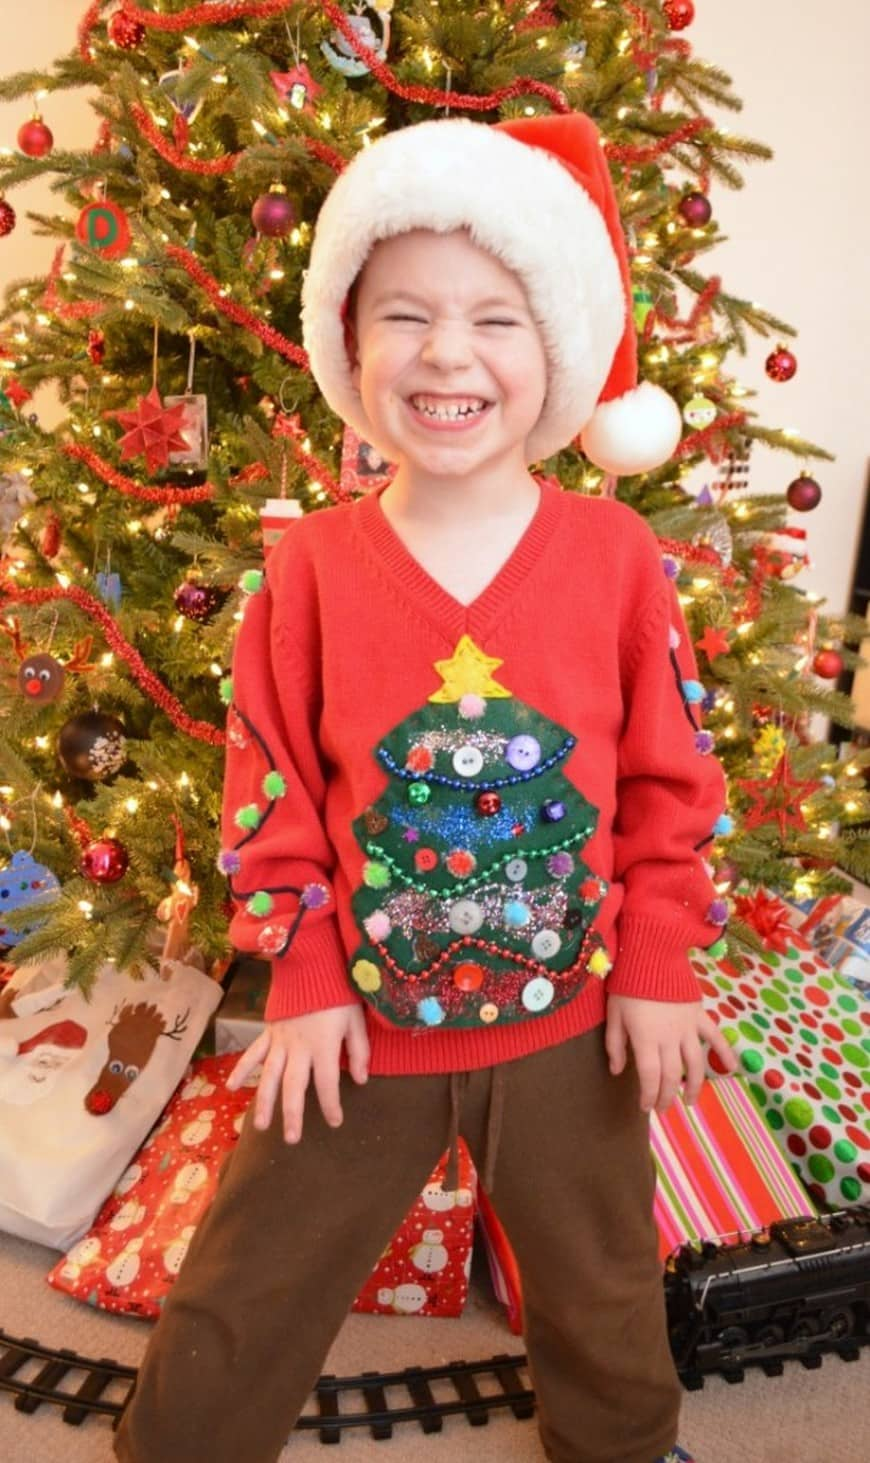 30 Diy Ugly Sweater Ideas For Christmas Amp Parties Photos